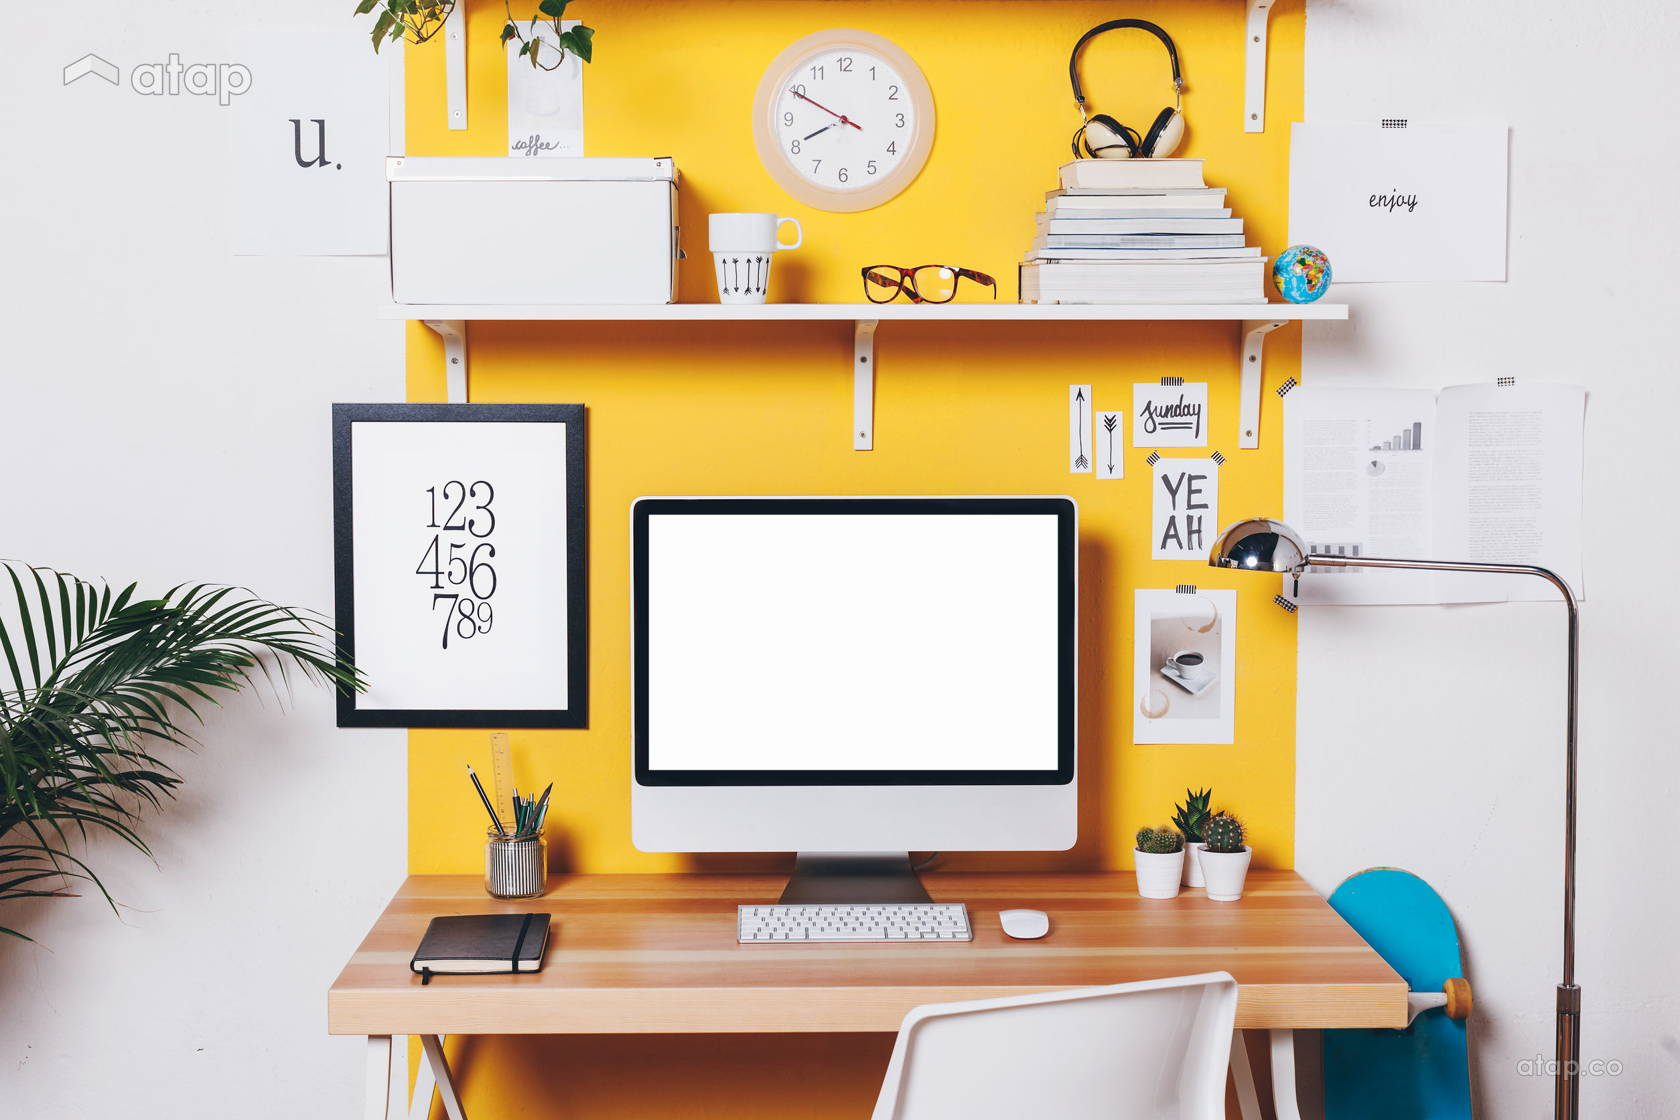 Surprising 7 Home Office Ideas That Will Get Your Creative Juices Flowing Largest Home Design Picture Inspirations Pitcheantrous